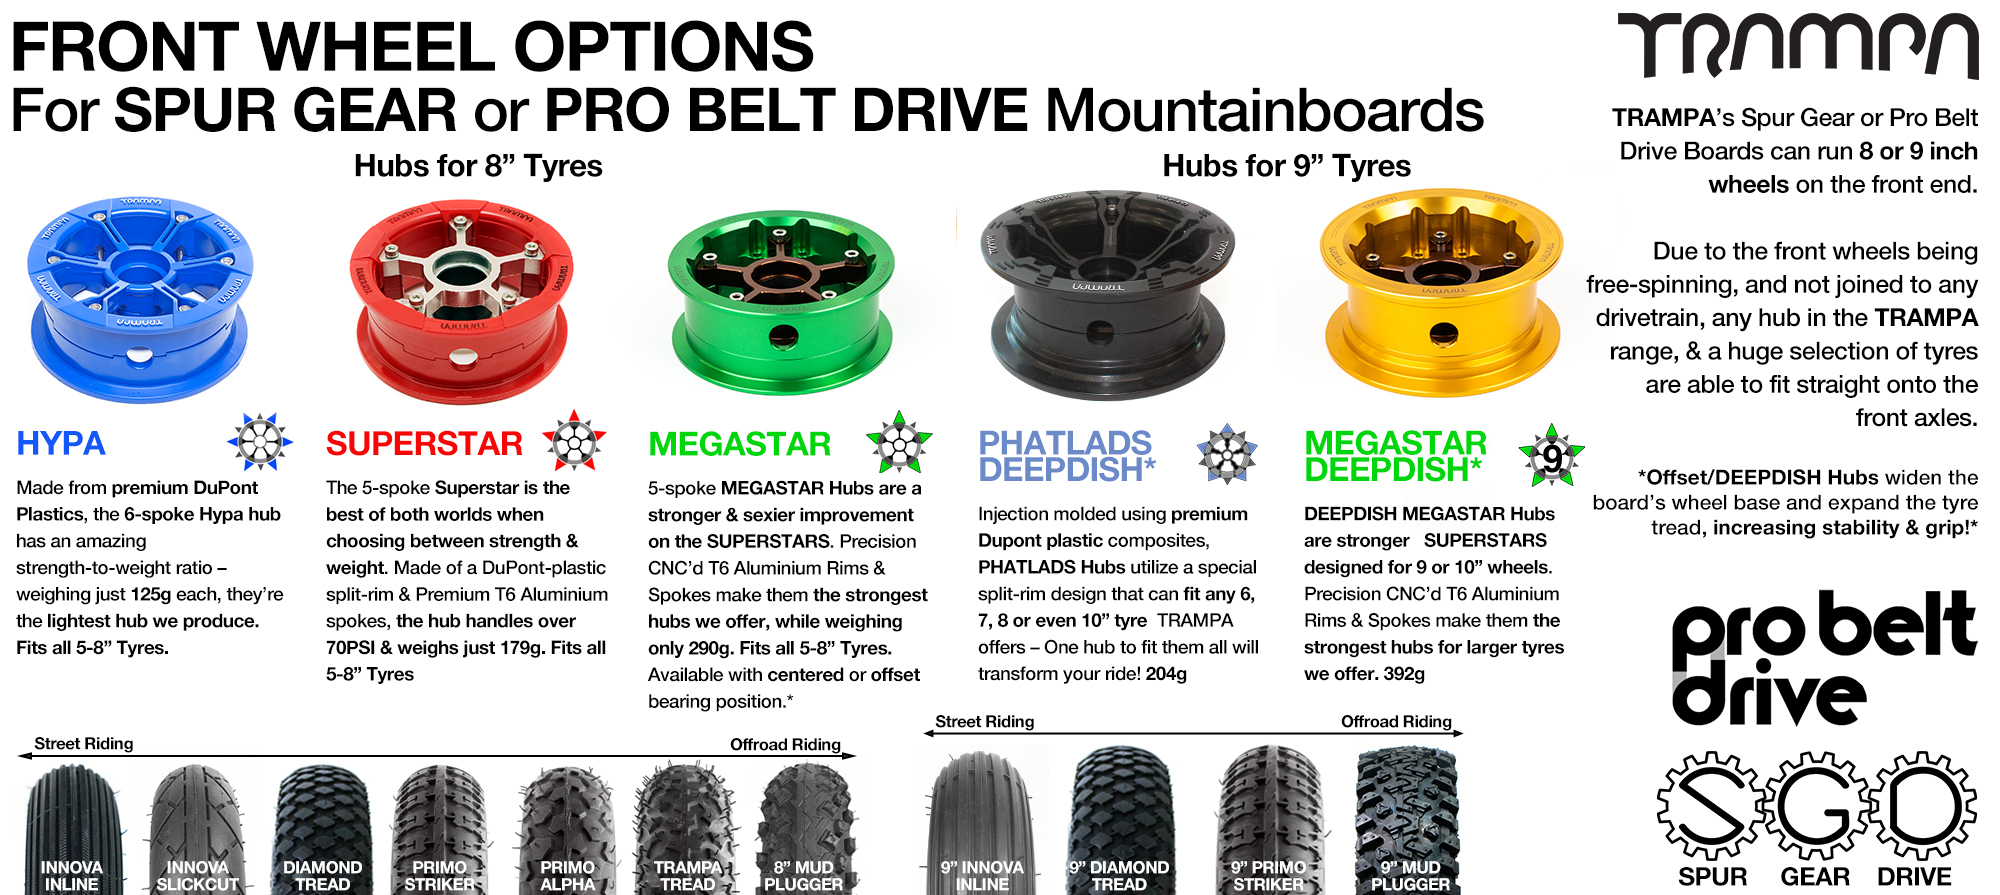 Build your own Custom TRAMPA Wheel to fit to your SPUR GEAR DRIVE Motor Mount. You can fit PHATLADS, SUPERSTARSS, PRIMO's or  MEGASTAR's DEEP DISH MEGASTAR's! 8, 9 or 10 Inch wheels of awesome selection for on & off road! Amazing!!